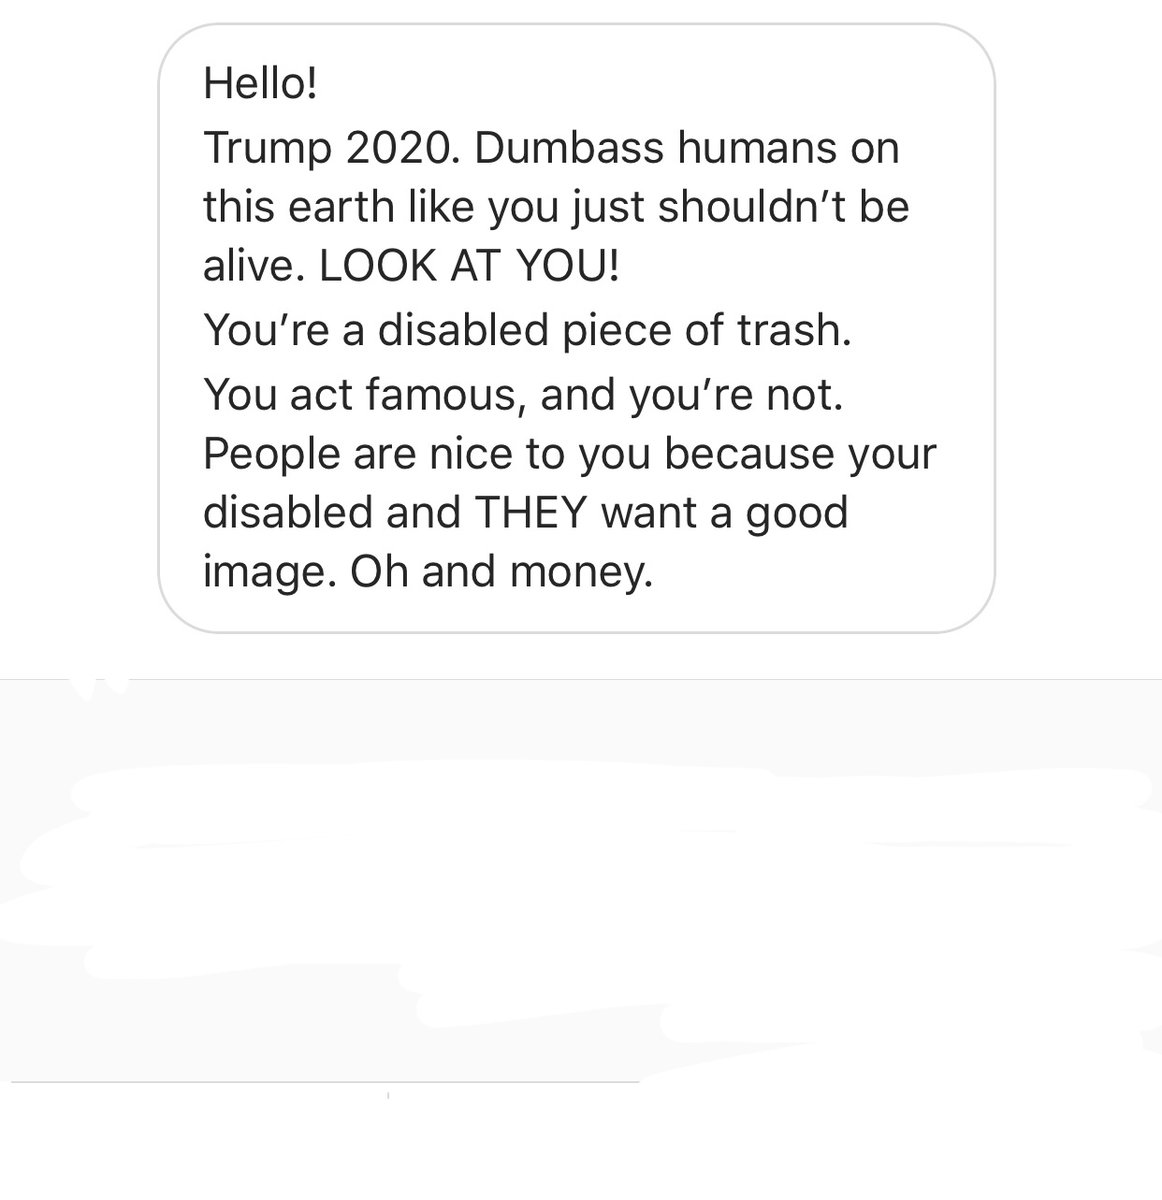 """Got this message last night. Still think politics is just a """"difference of opinion""""??? 😡😡😡 https://t.co/S7nothhSeN"""